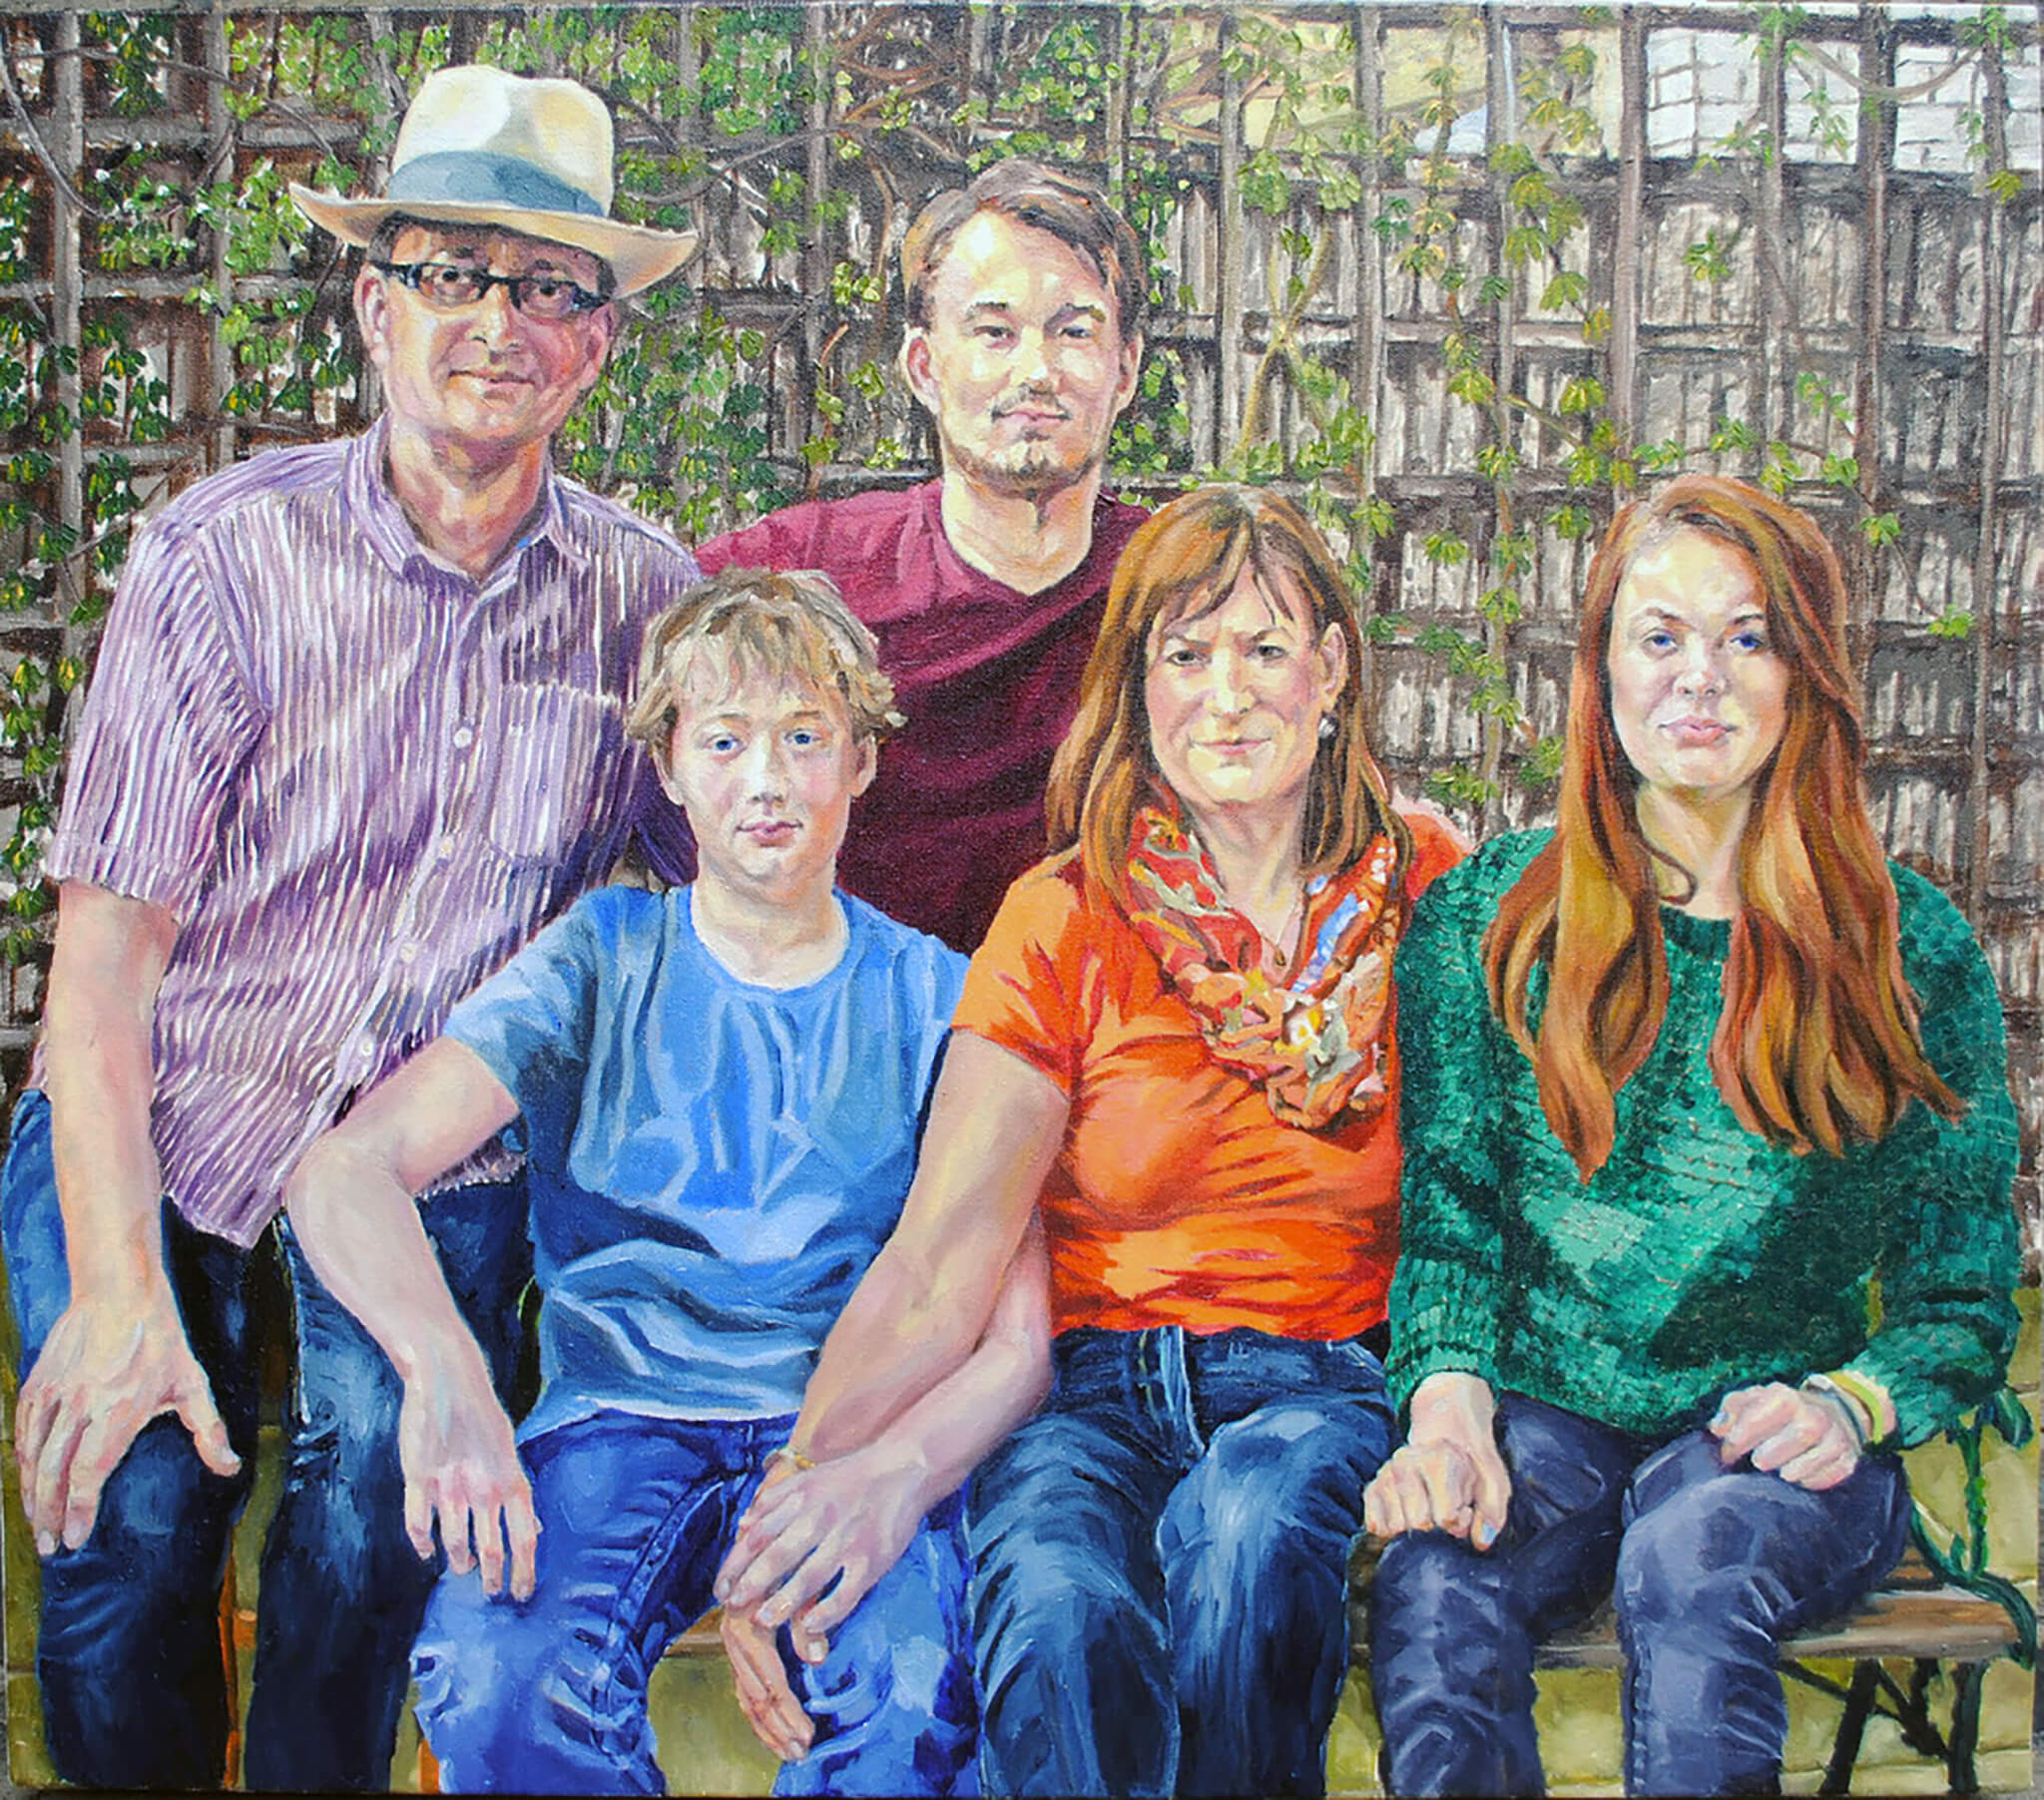 Family portrait oil on canvas portrait artwork by Stella Tooth.